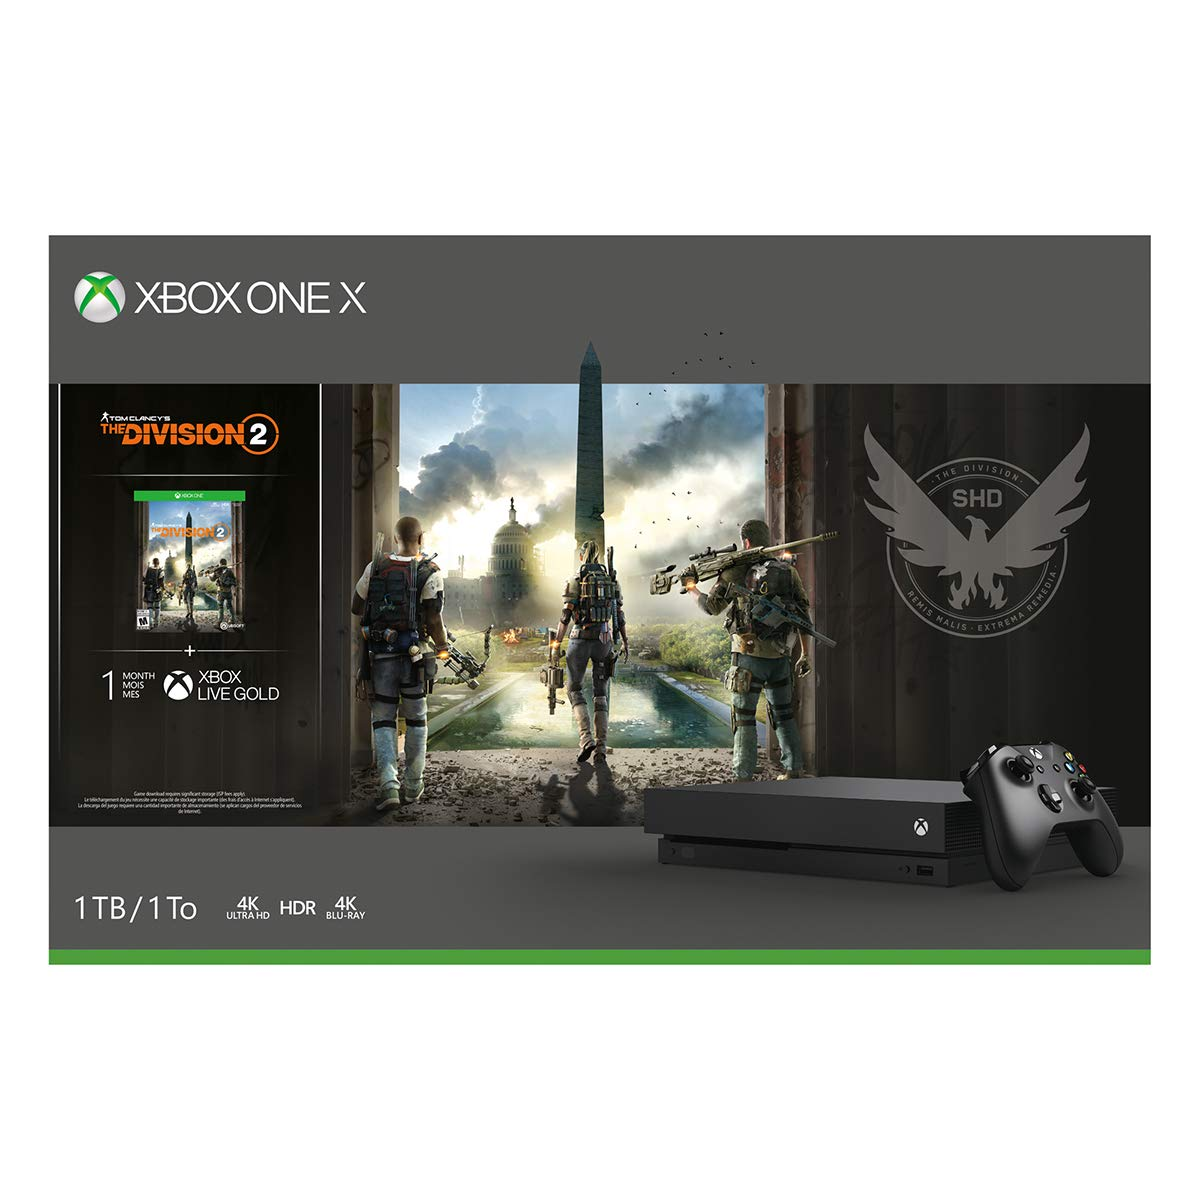 Xbox One X 1TB Console - Tom Clancy's The Division 2 Bundle by Microsoft (Image #4)